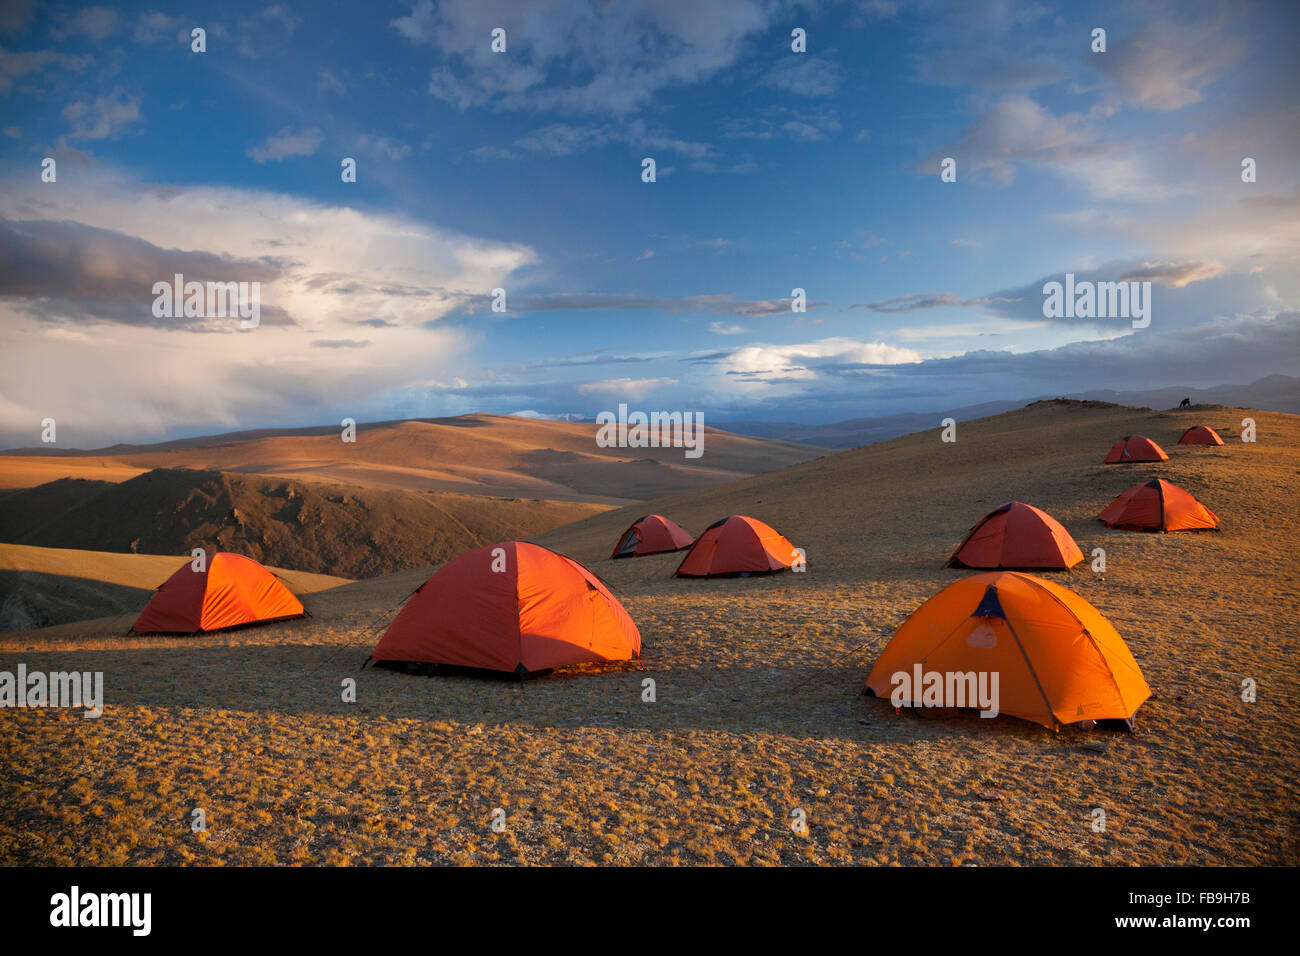 A base camp for hiking to the summit of Tsaast Uul in Bayan-Ölgii, far-western Mongolia. - Stock Image